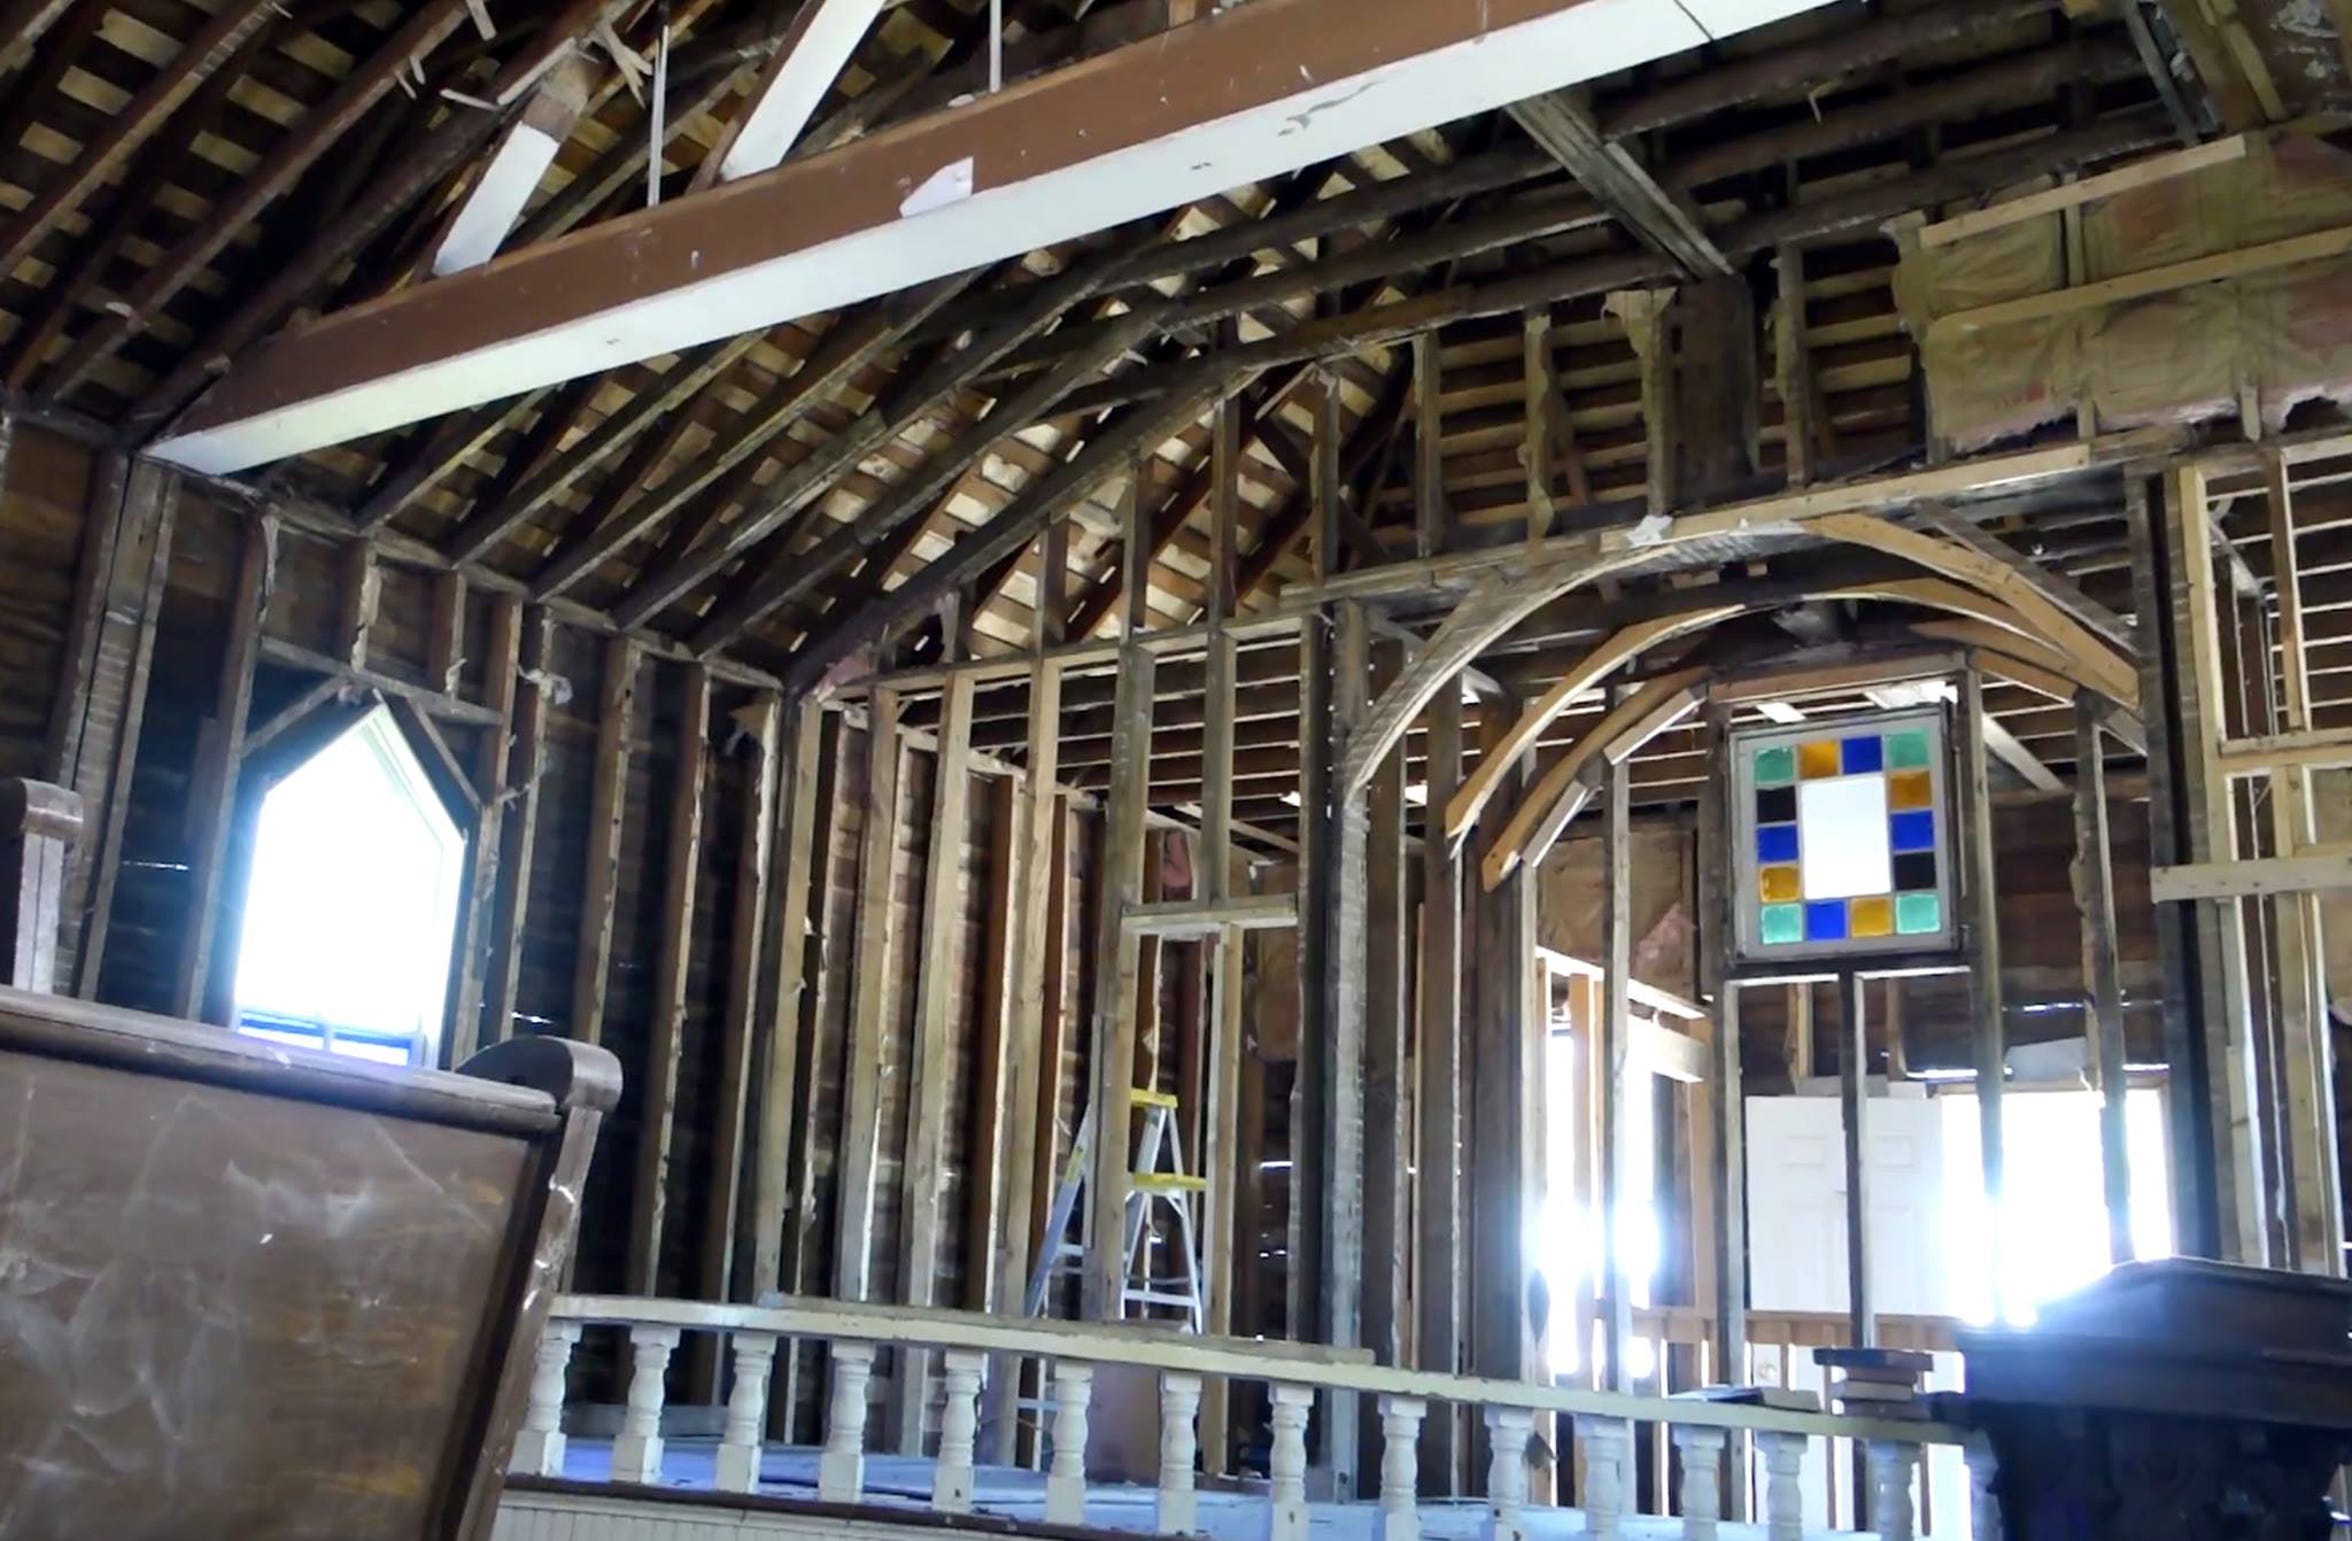 The church walls were stripped to the bare frame.